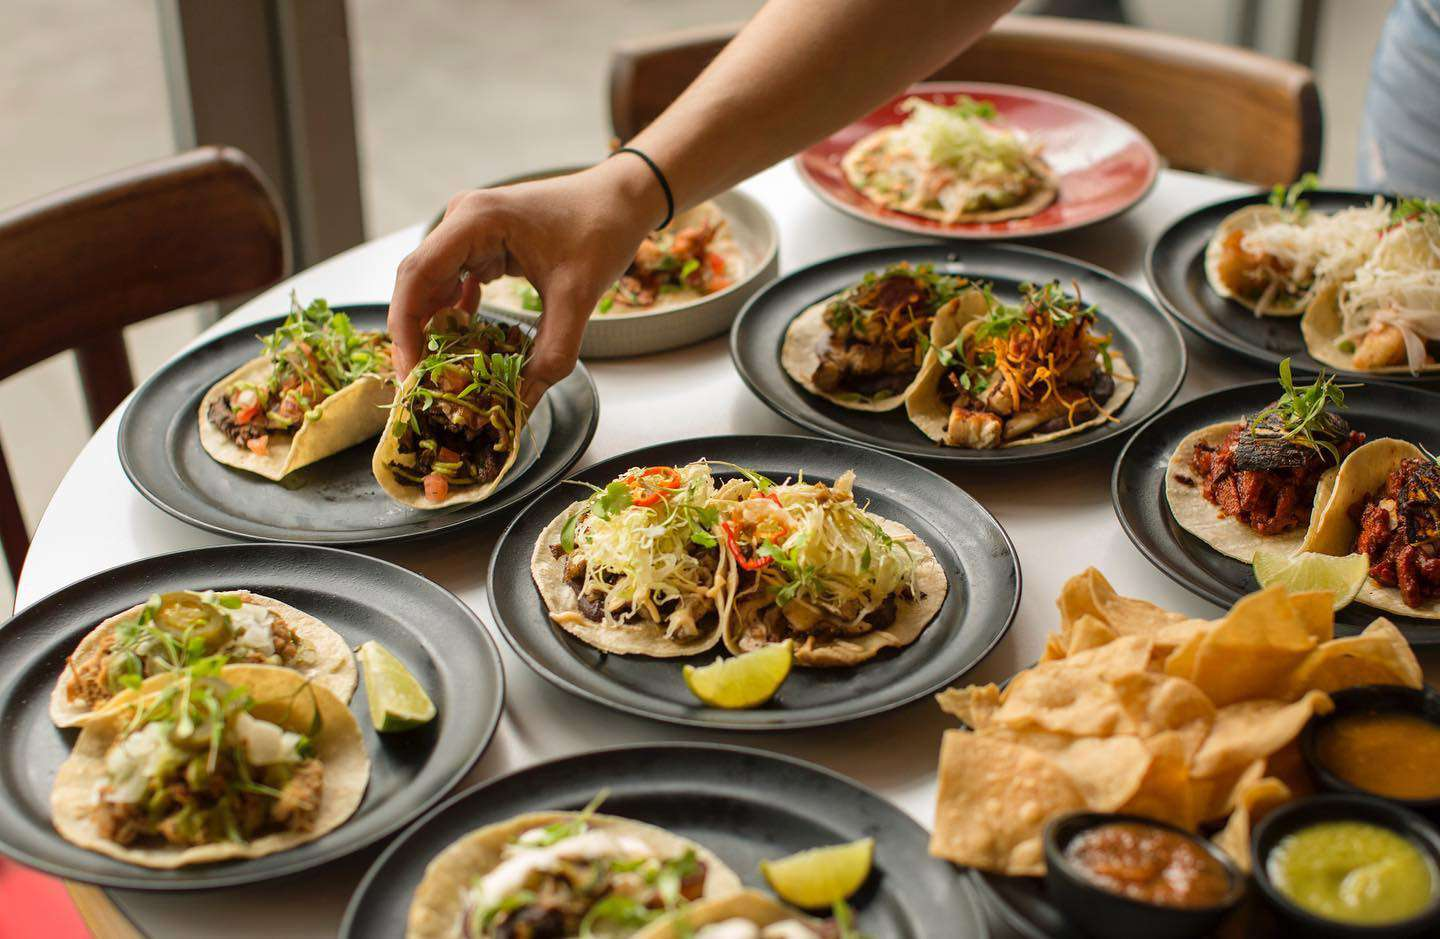 A hand picking up a taco from a table filled with different tacos